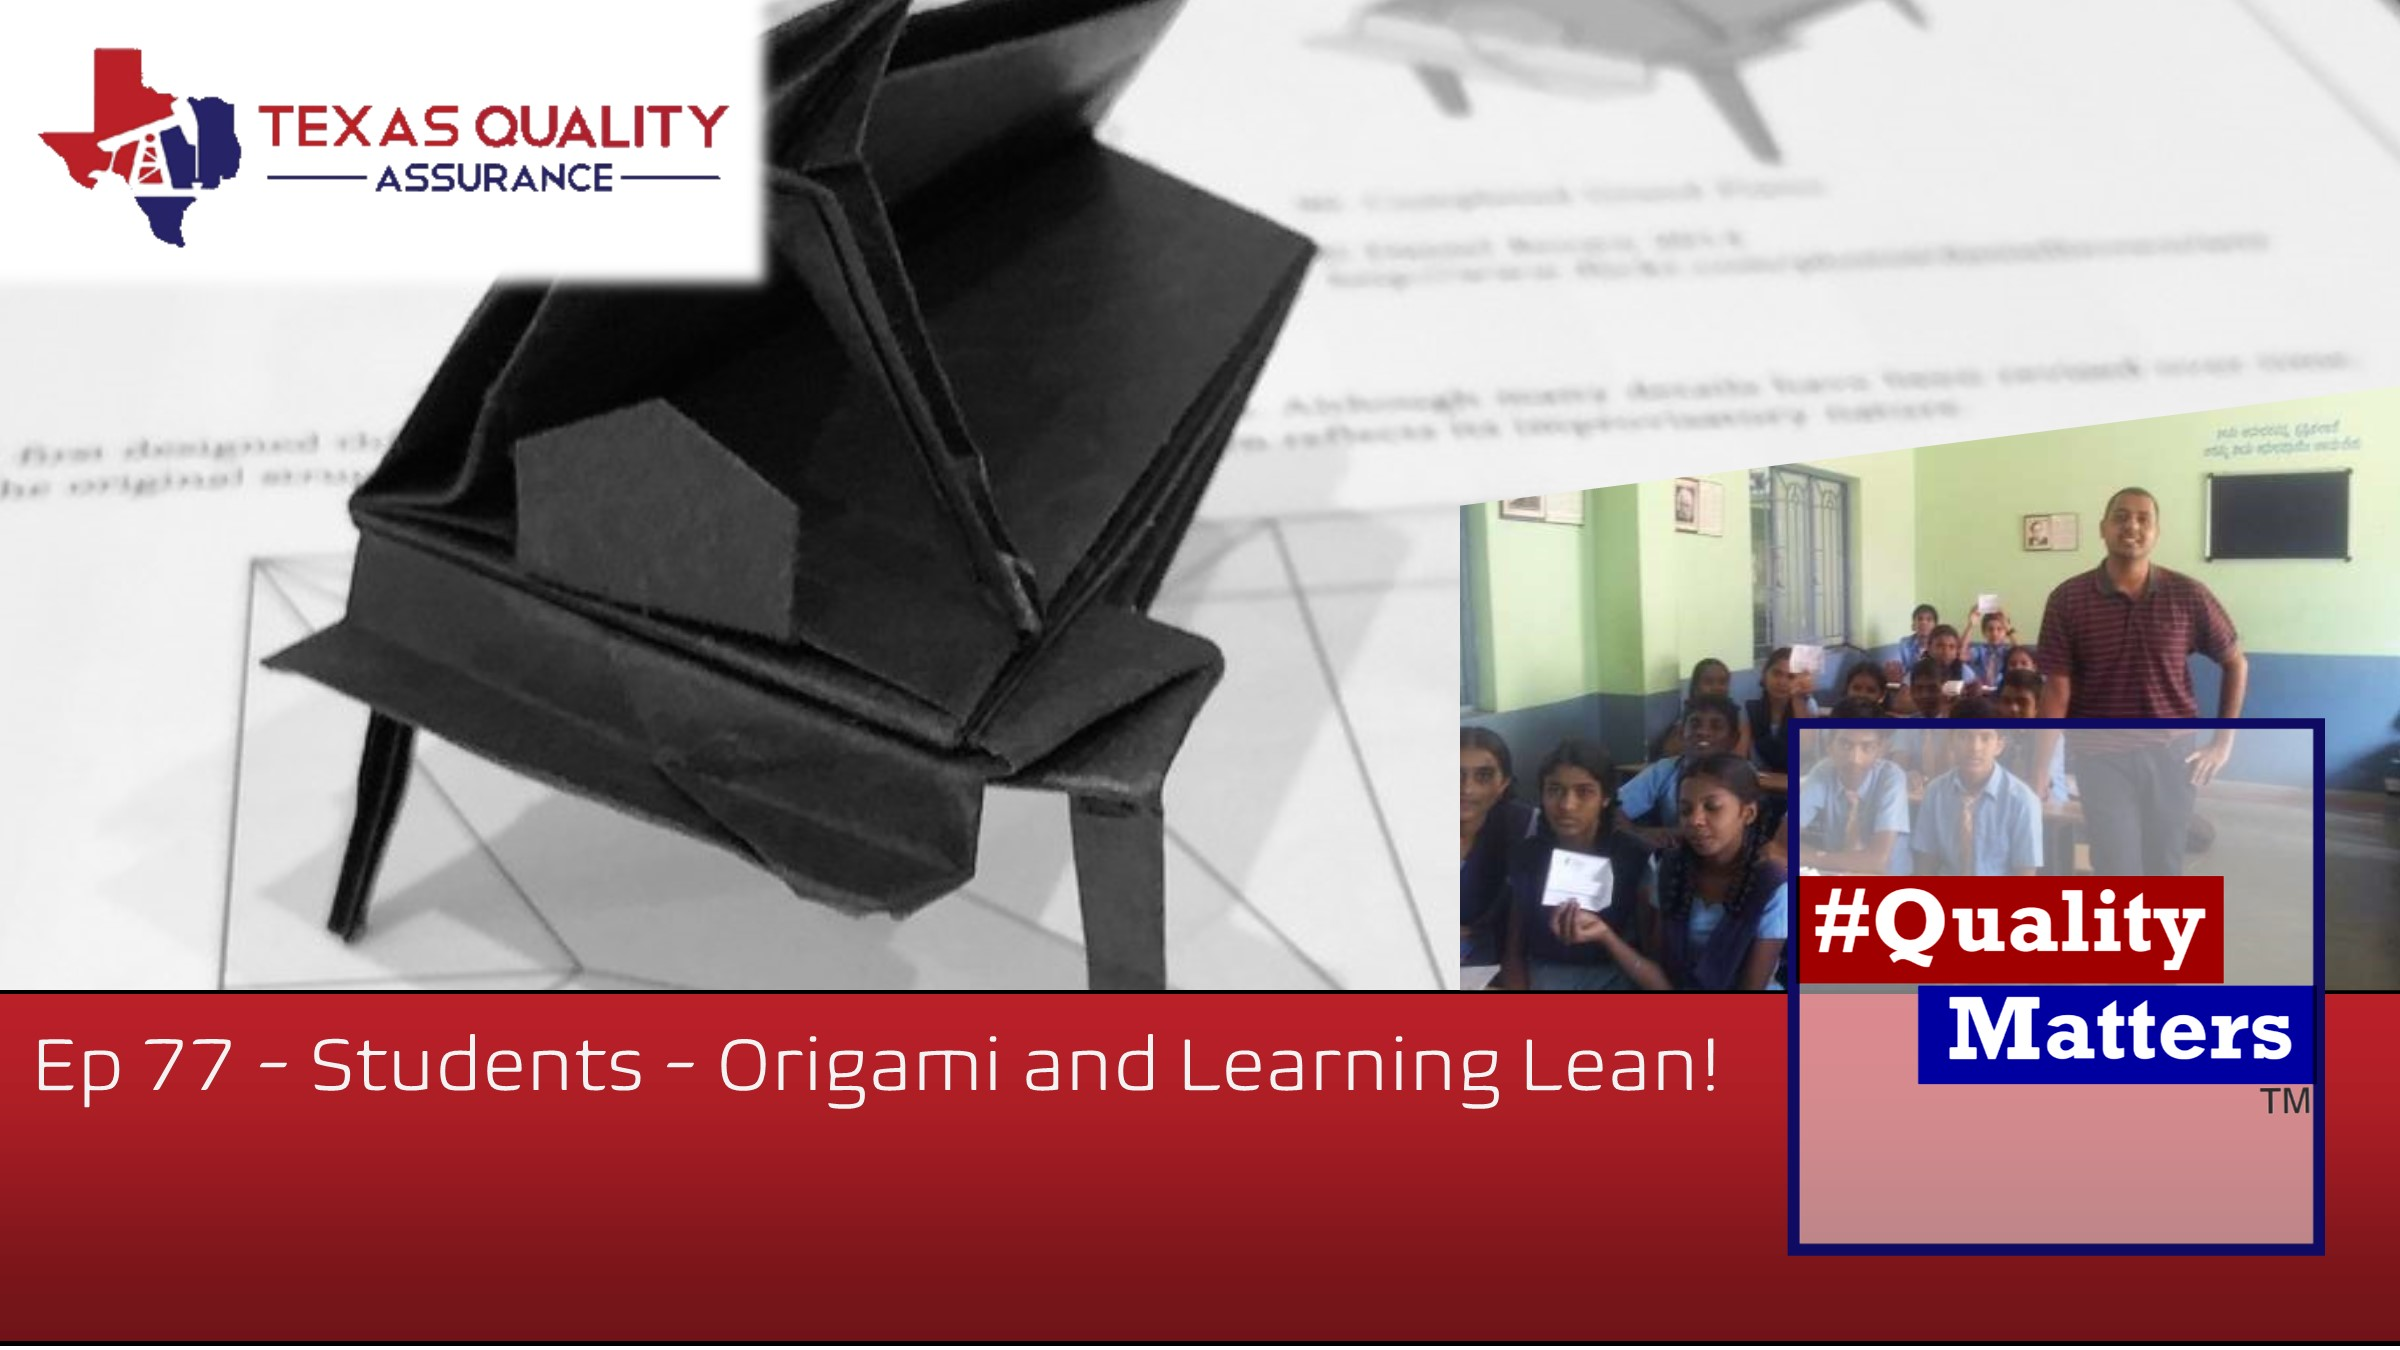 Using Origami to teach Six Sigma